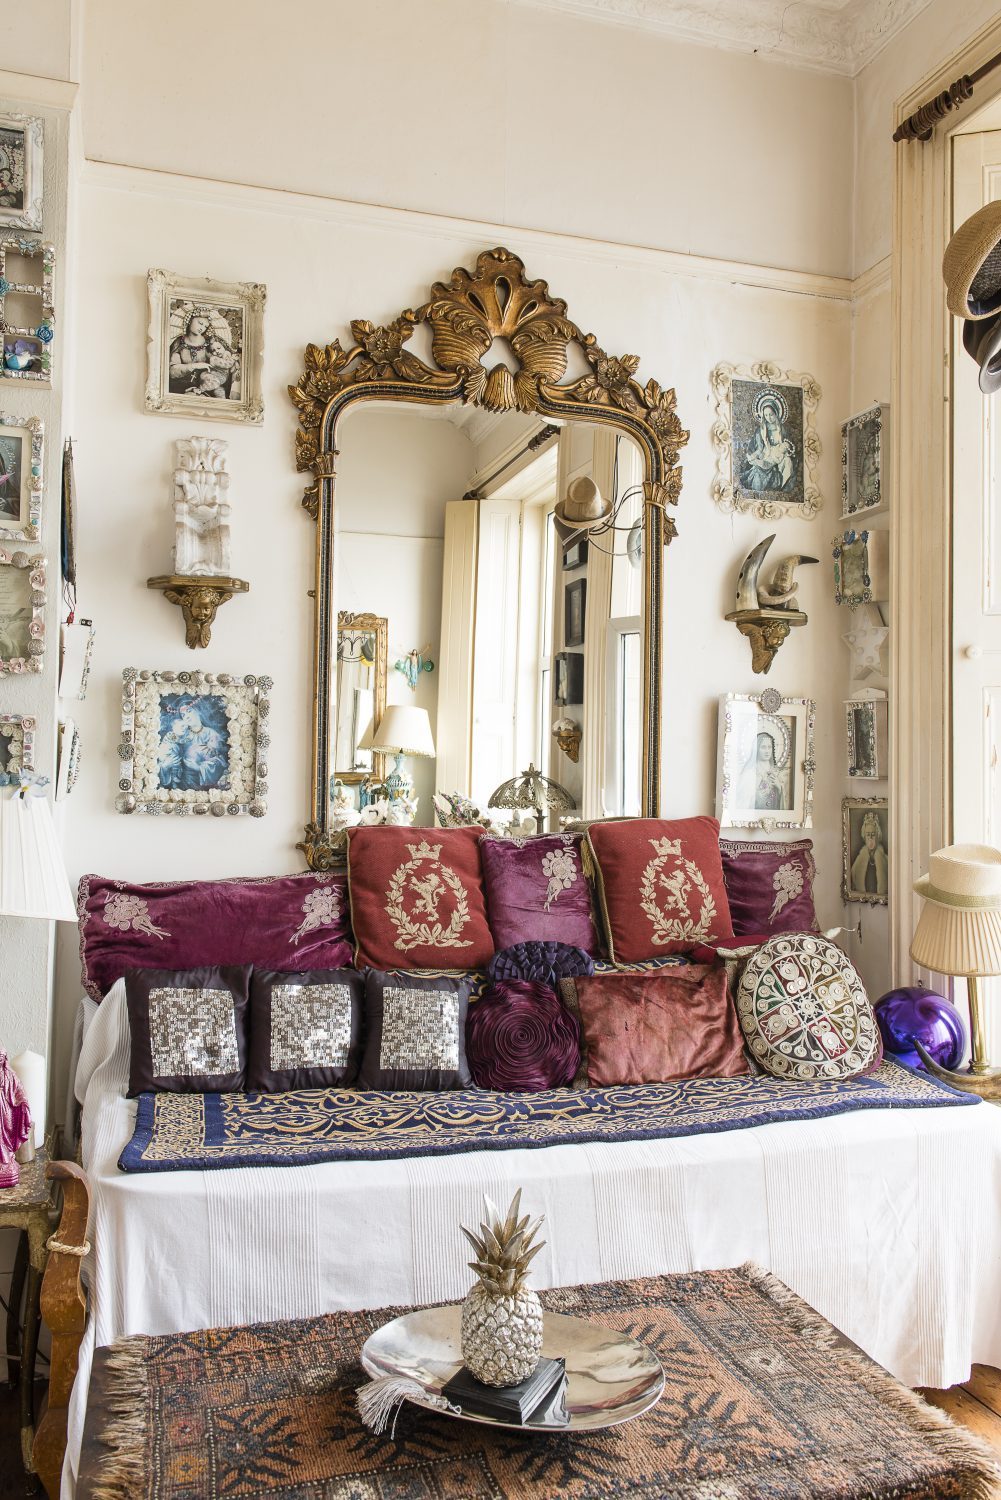 Sassy seafront home is a dreamy paradise of rescued, saved and upcycled treasures